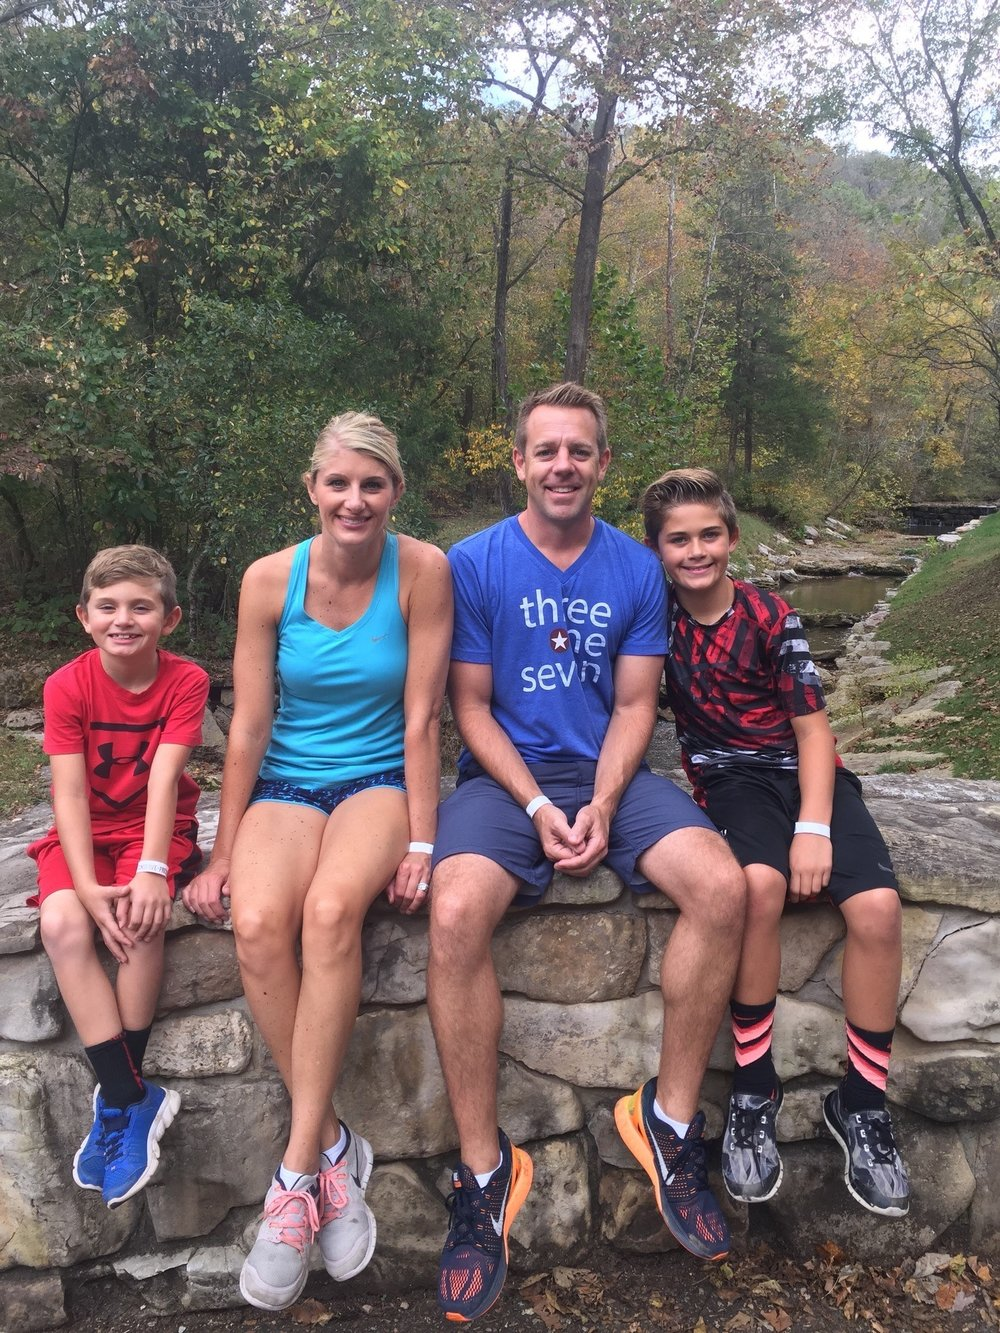 Steill family: Leyton, Lindsey, Justin, and Cohen